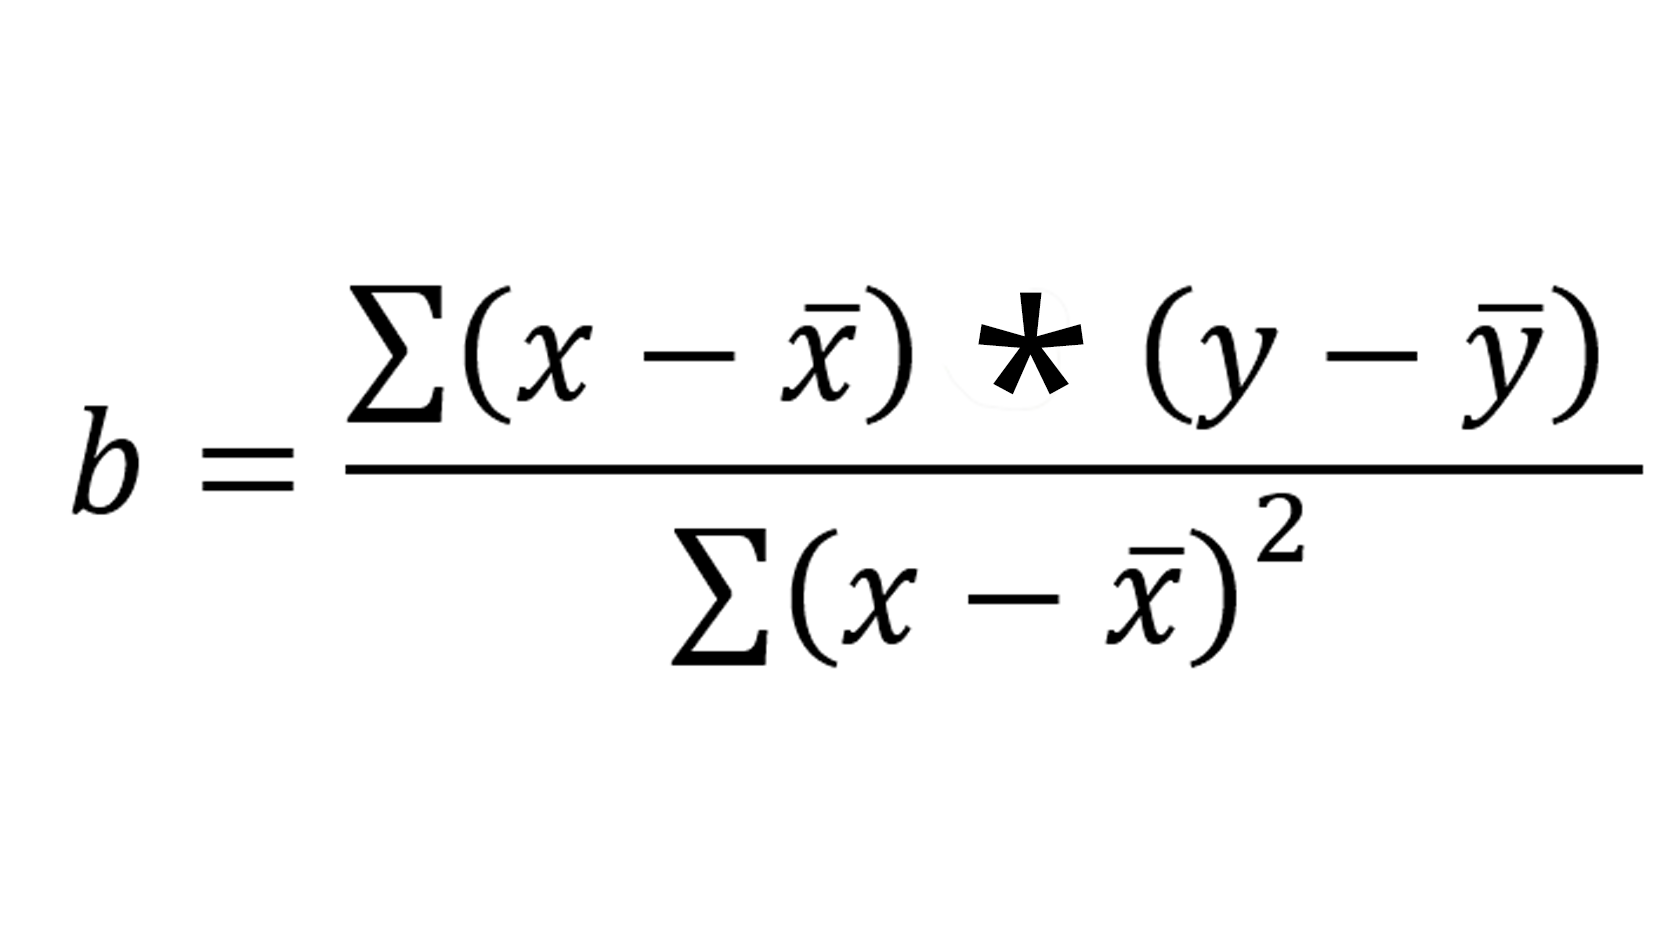 An equation for calculating the coefficient, b.